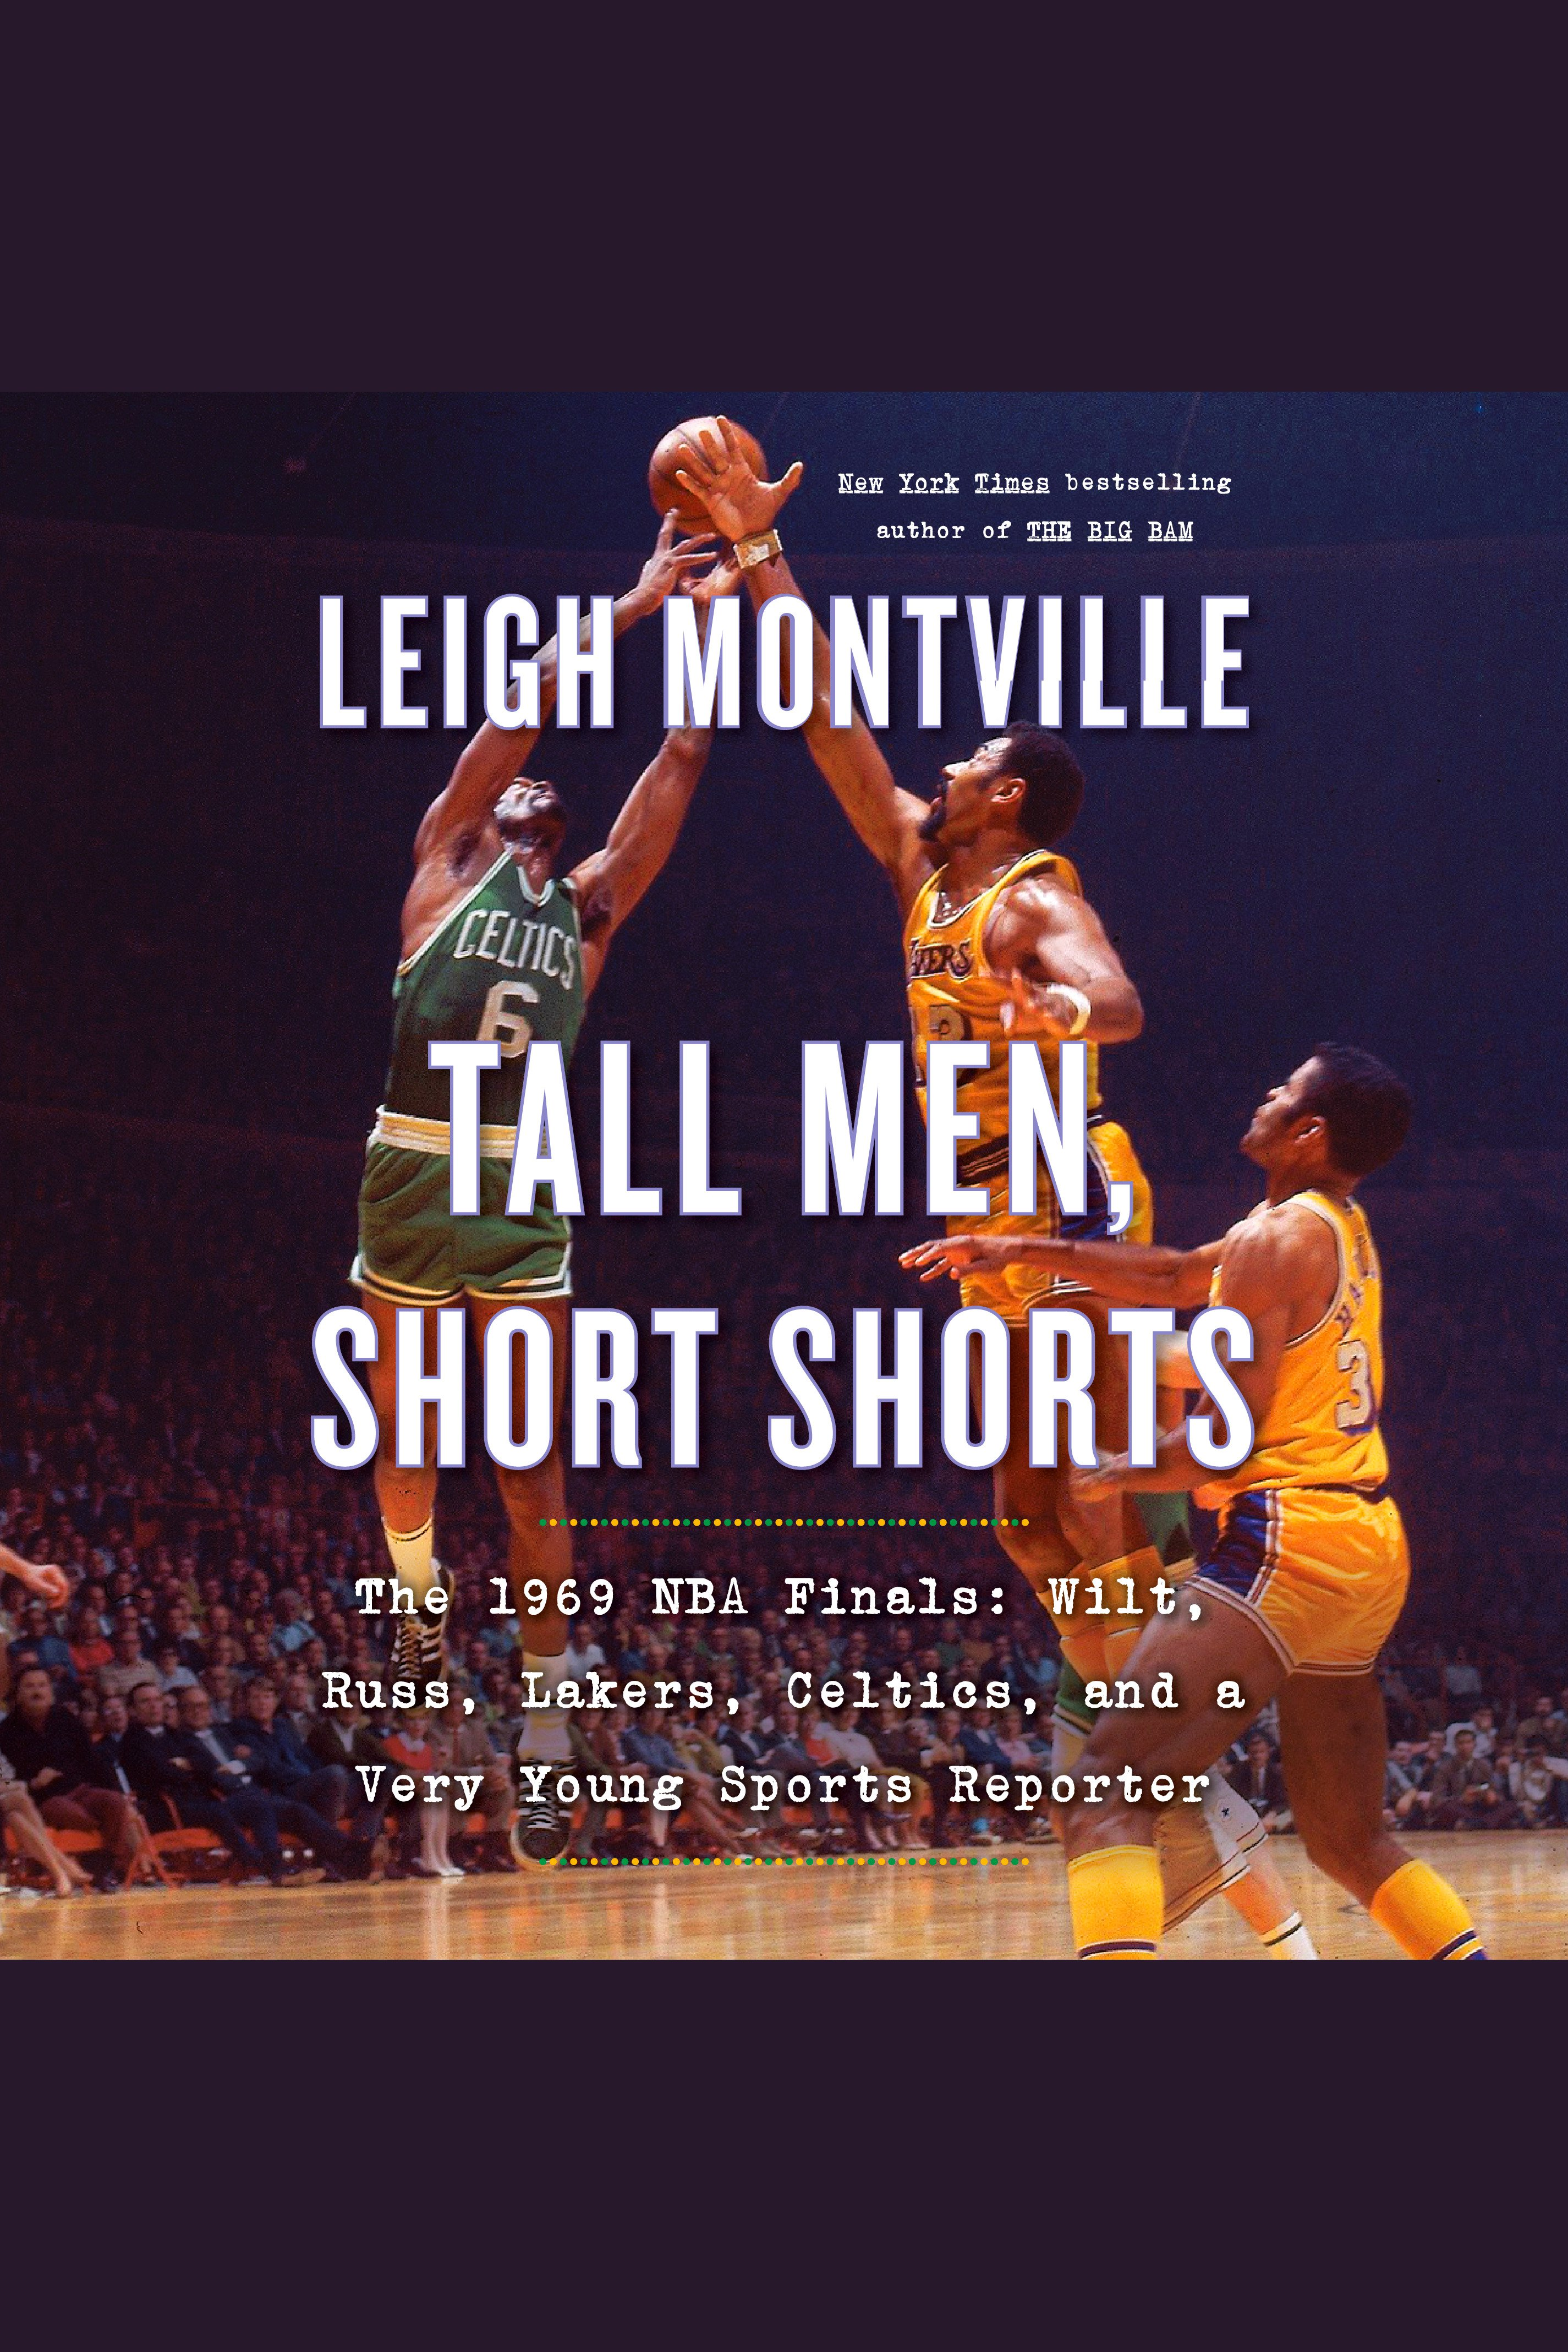 Tall Men, Short Shorts The 1969 NBA Finals: Wilt, Russ, Lakers, Celtics, and a Very Young Sports Reporter